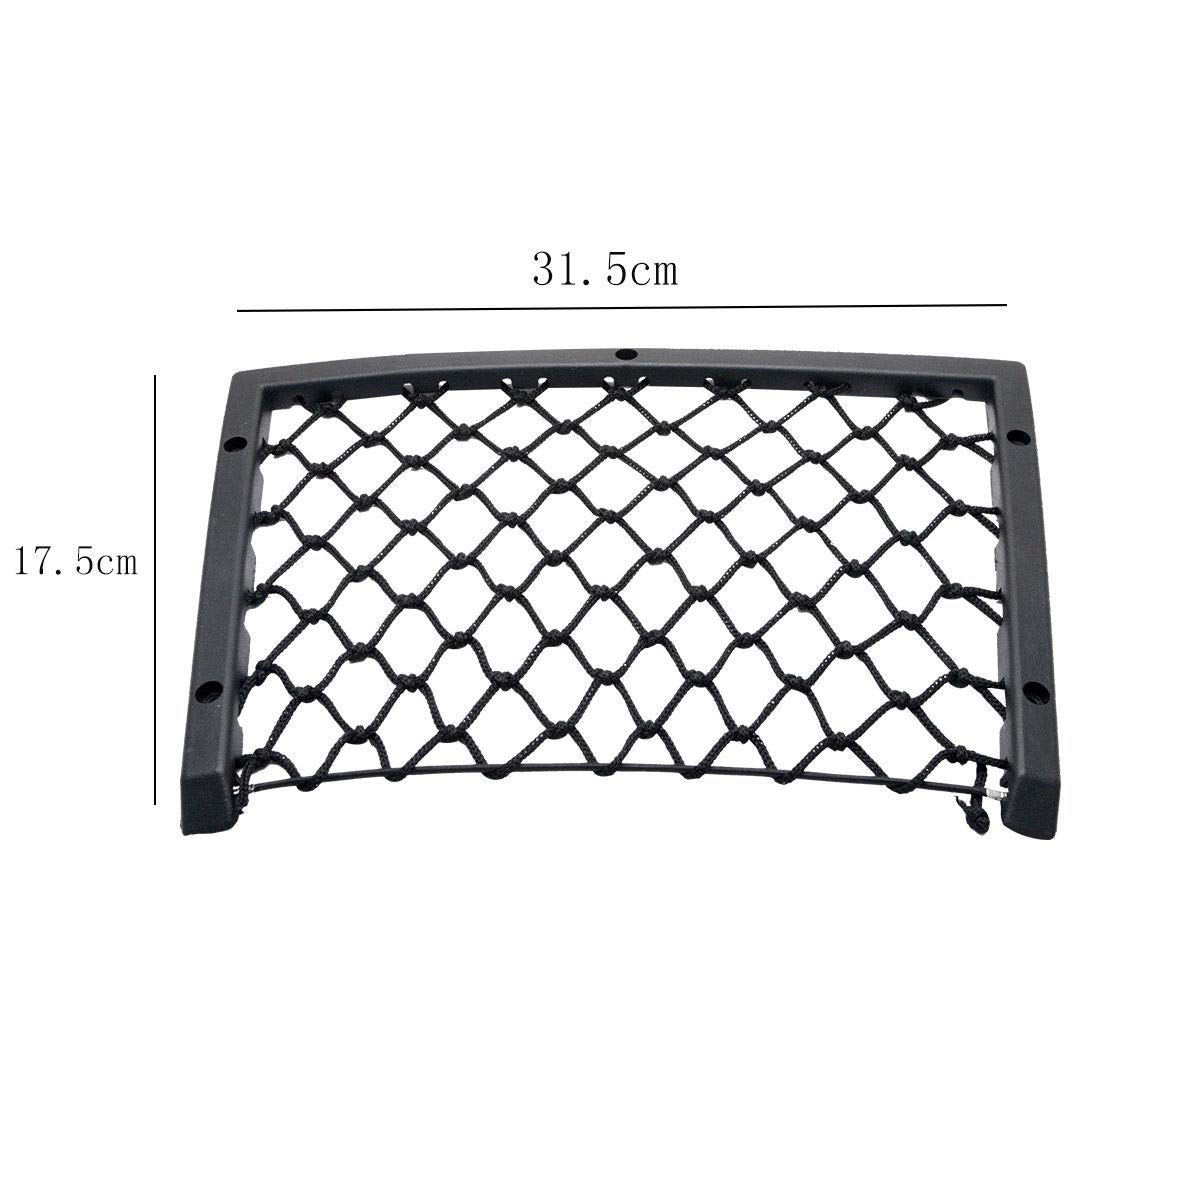 MASO 2x Storage Net Large Elastic Stowing Nets 31.5X17.5cm for Car Truck Boot Tidy